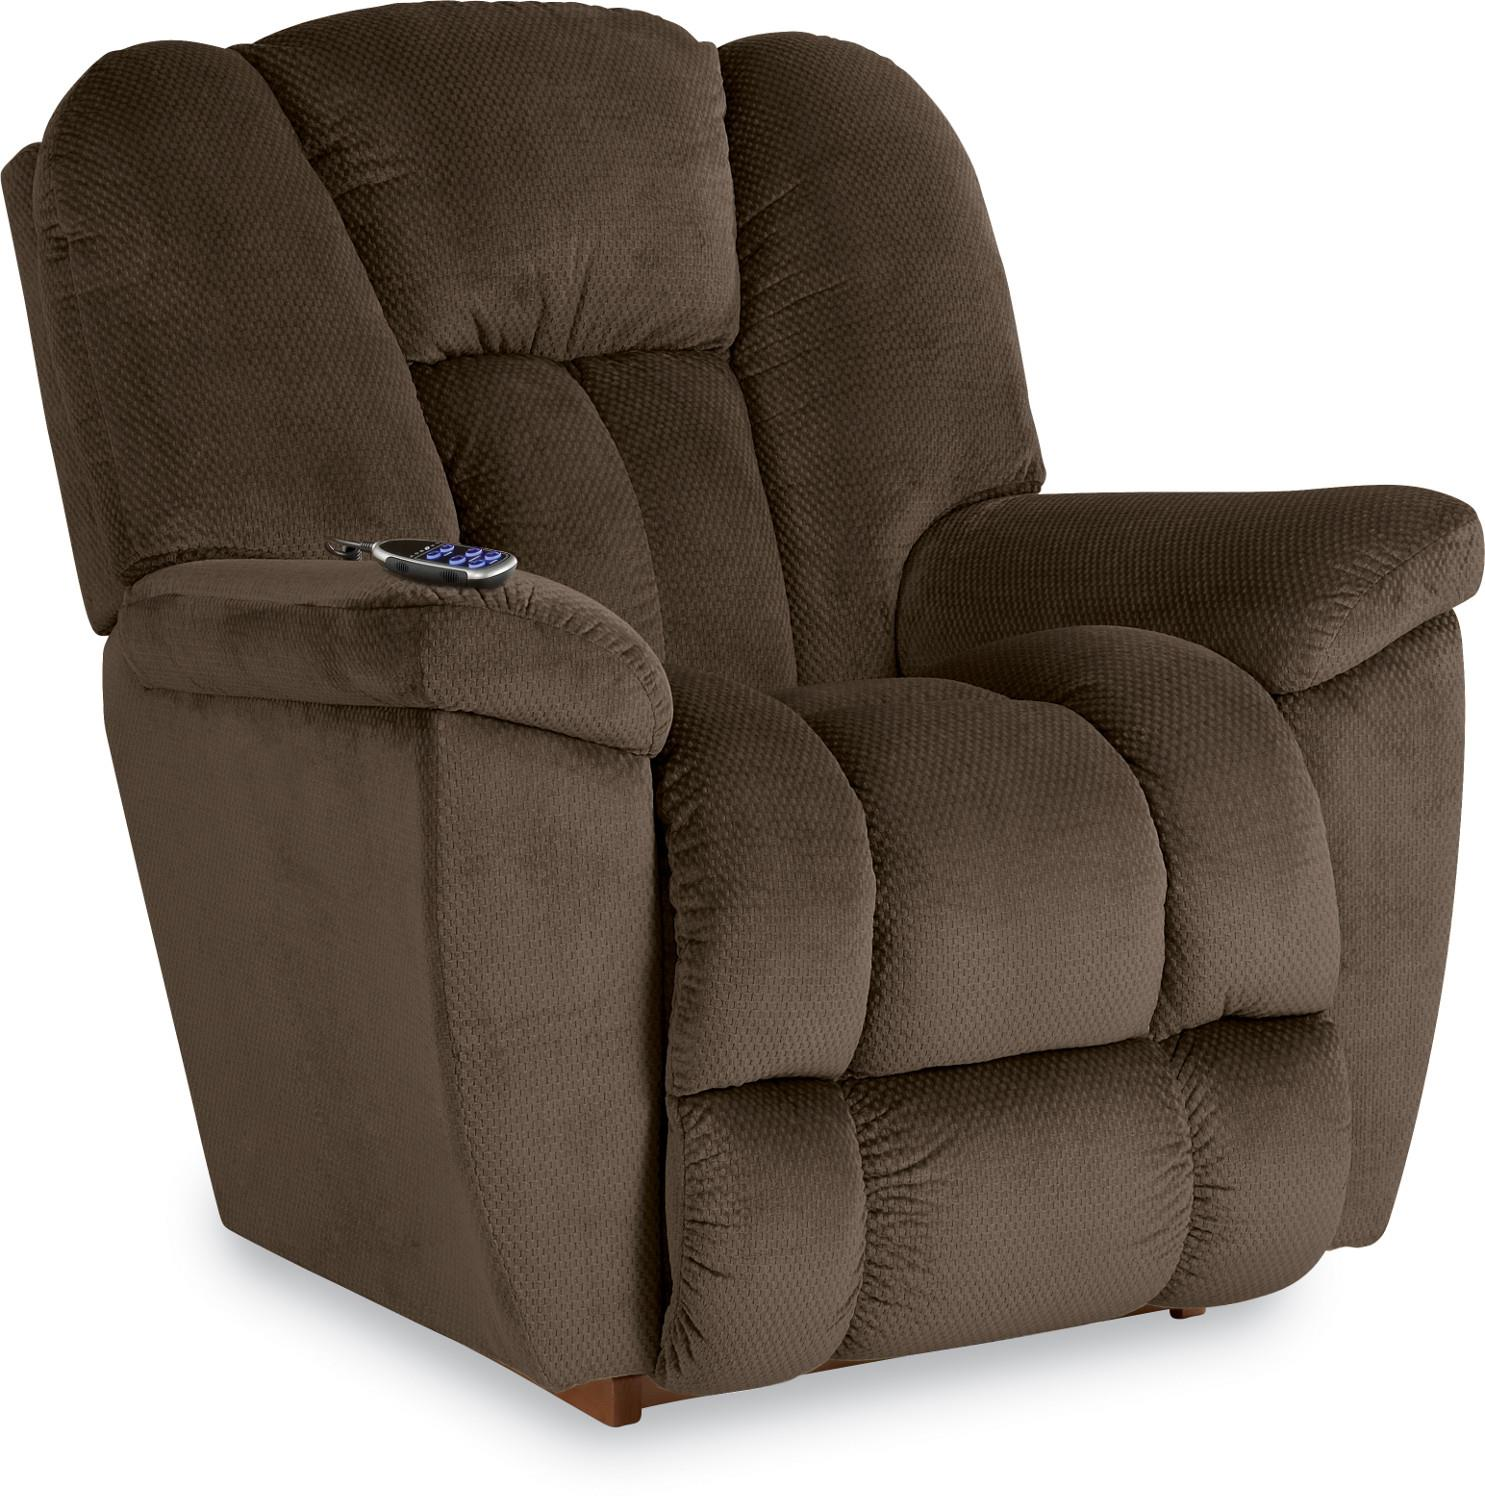 Maverick-582 Power Wall Recliner w/ Headrest & Lumbar by La-Z-Boy at Lindy's Furniture Company